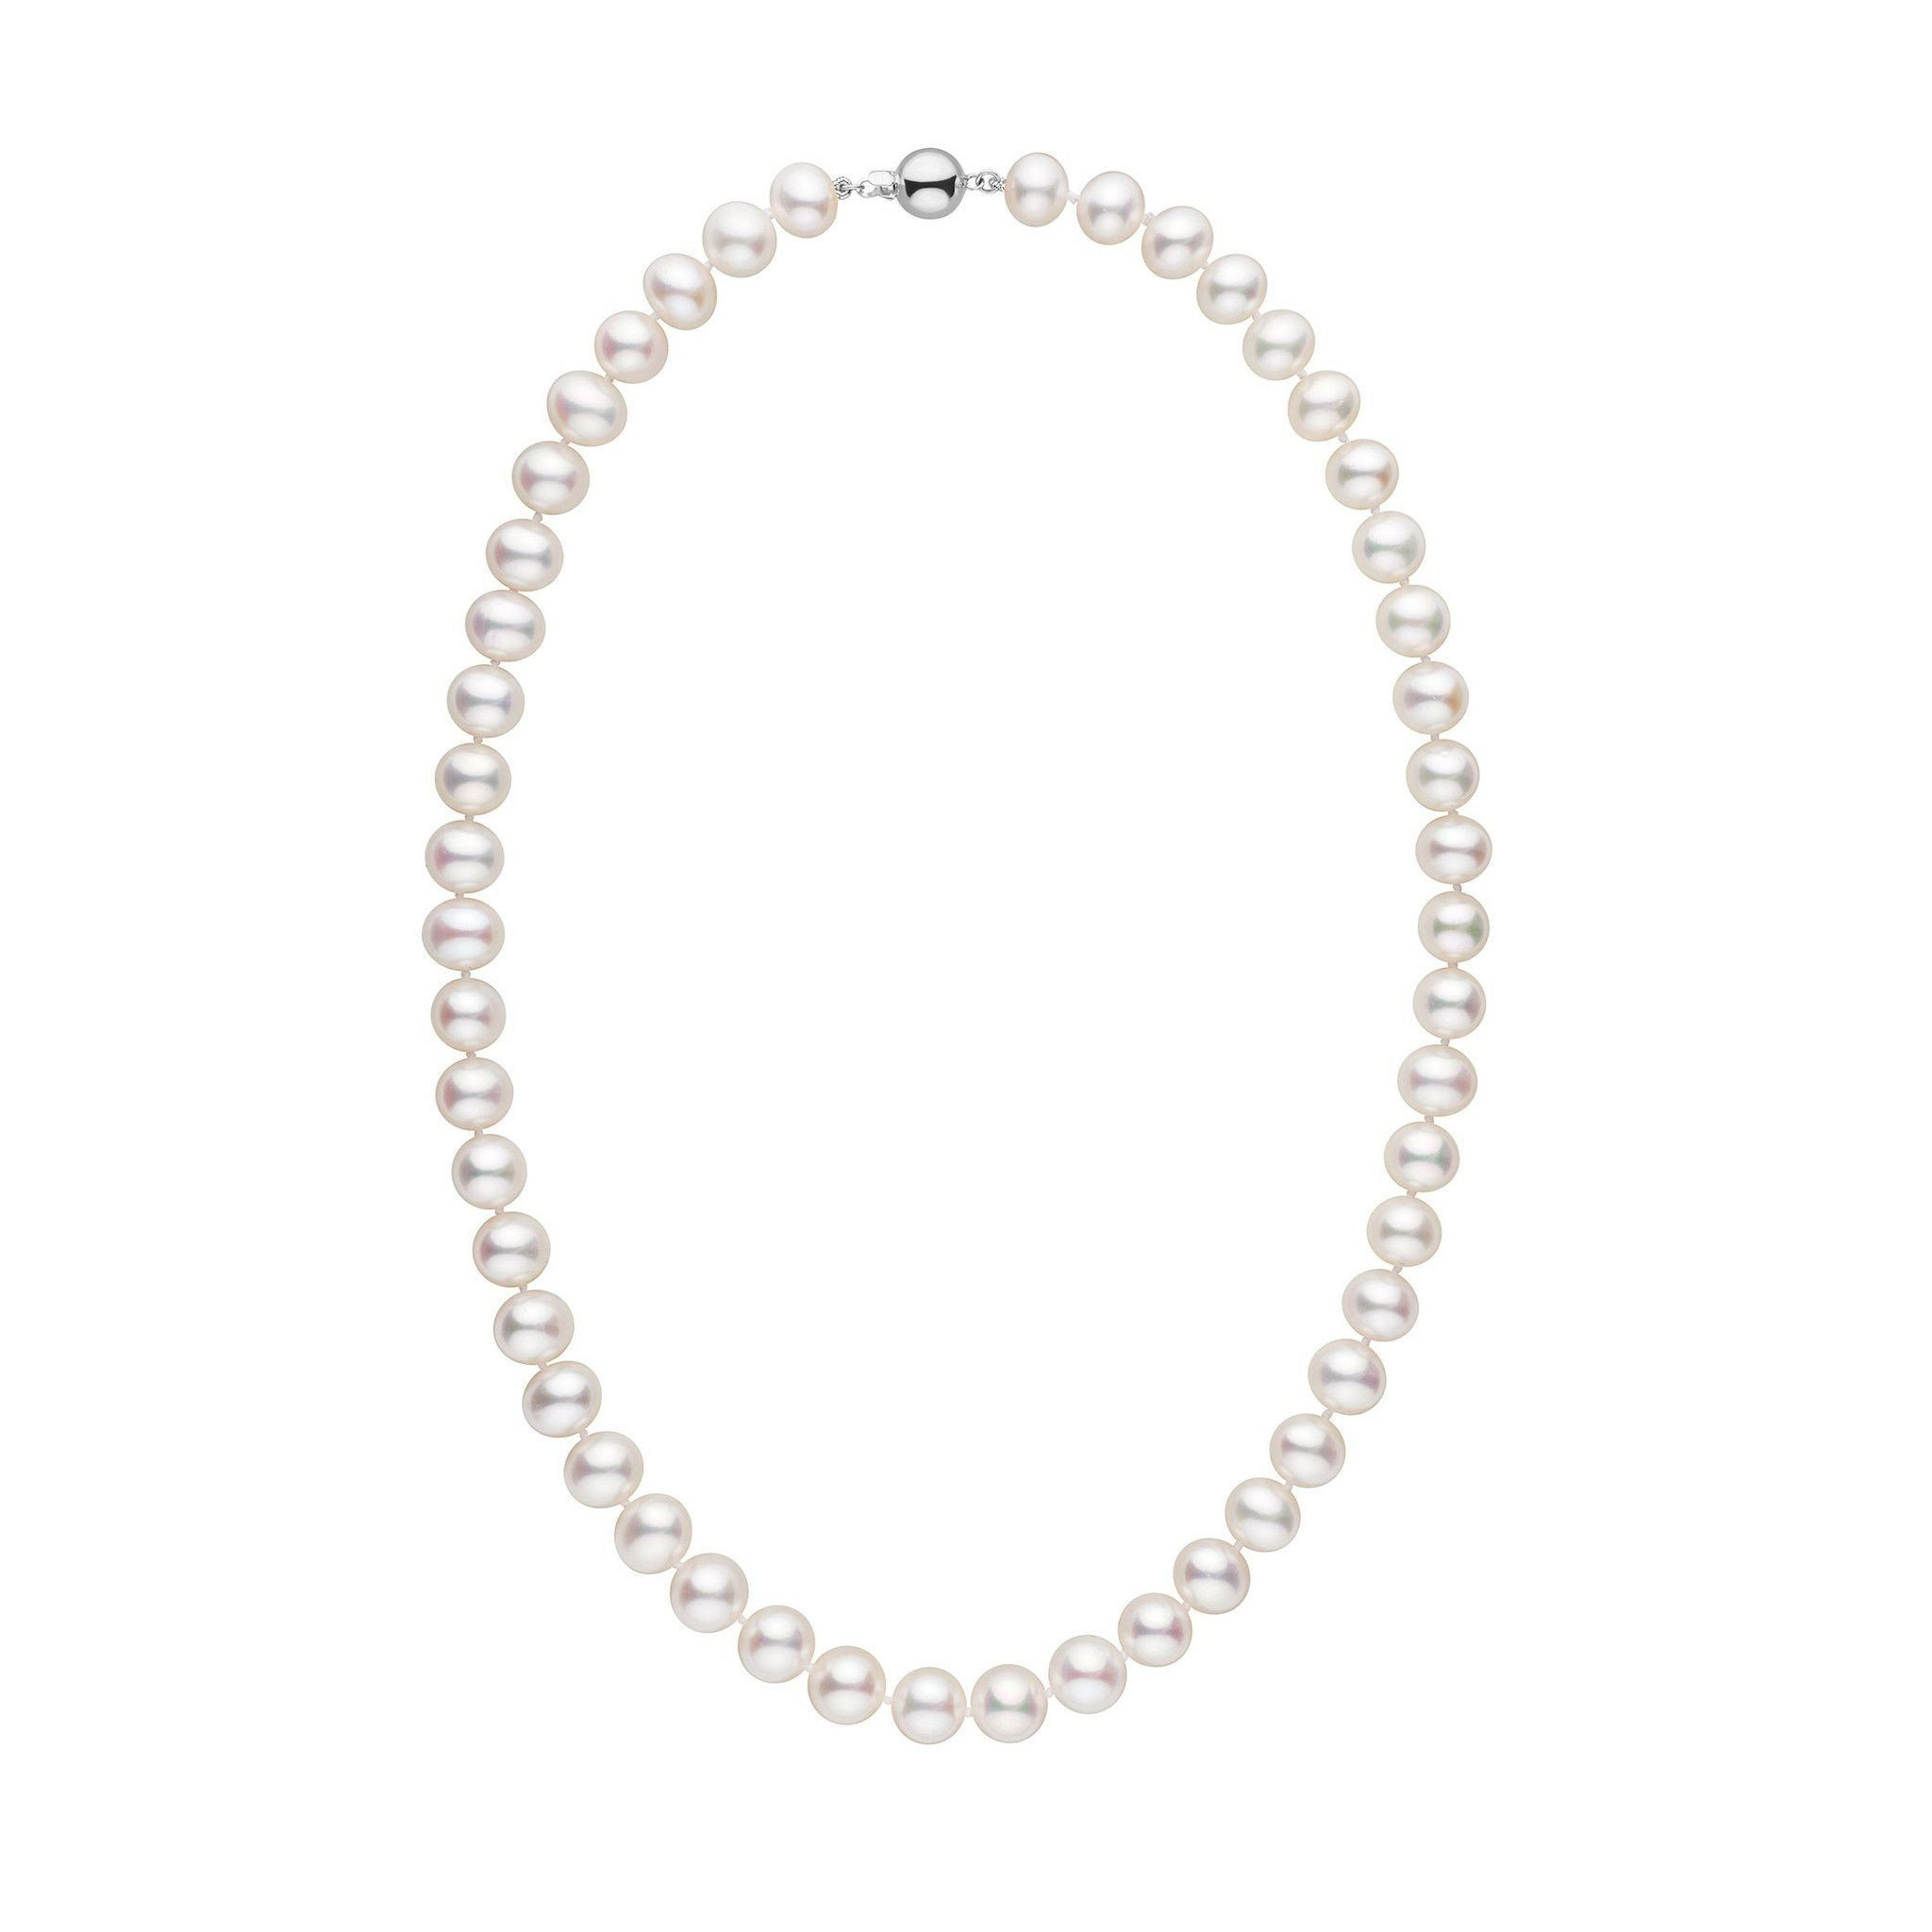 8.5-9.0 mm 18 Inch AA+ White Freshwater Pearl Necklace